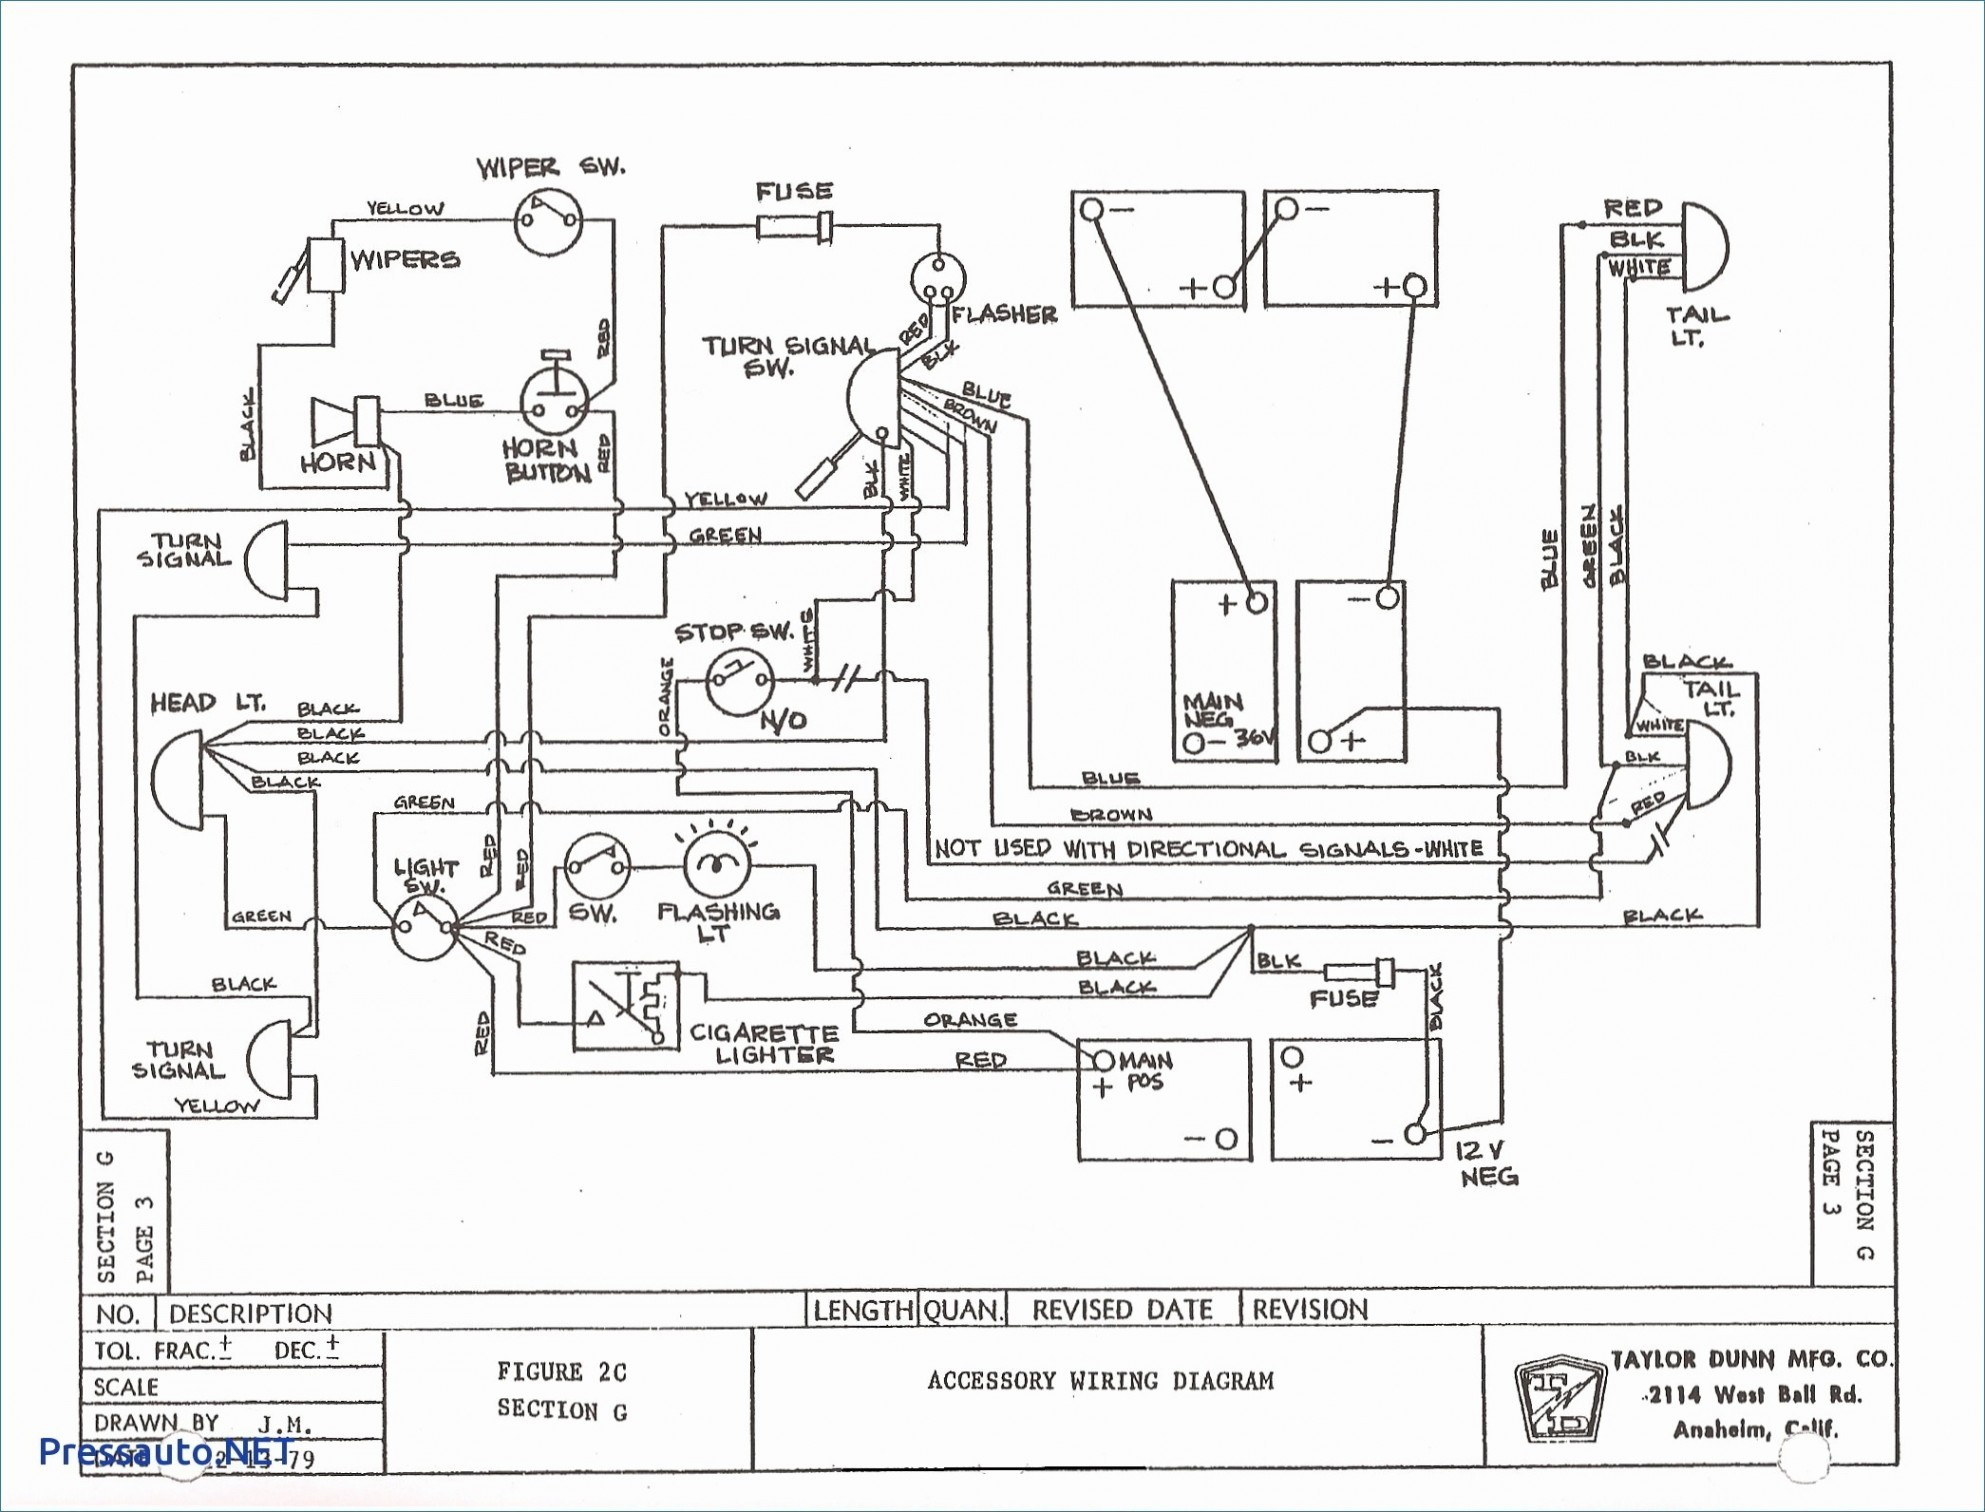 Club Car Parts Diagram Front End Mercedes Benz Parts Diagram – Wiring Diagram to Her with Vintage Of Club Car Parts Diagram Front End